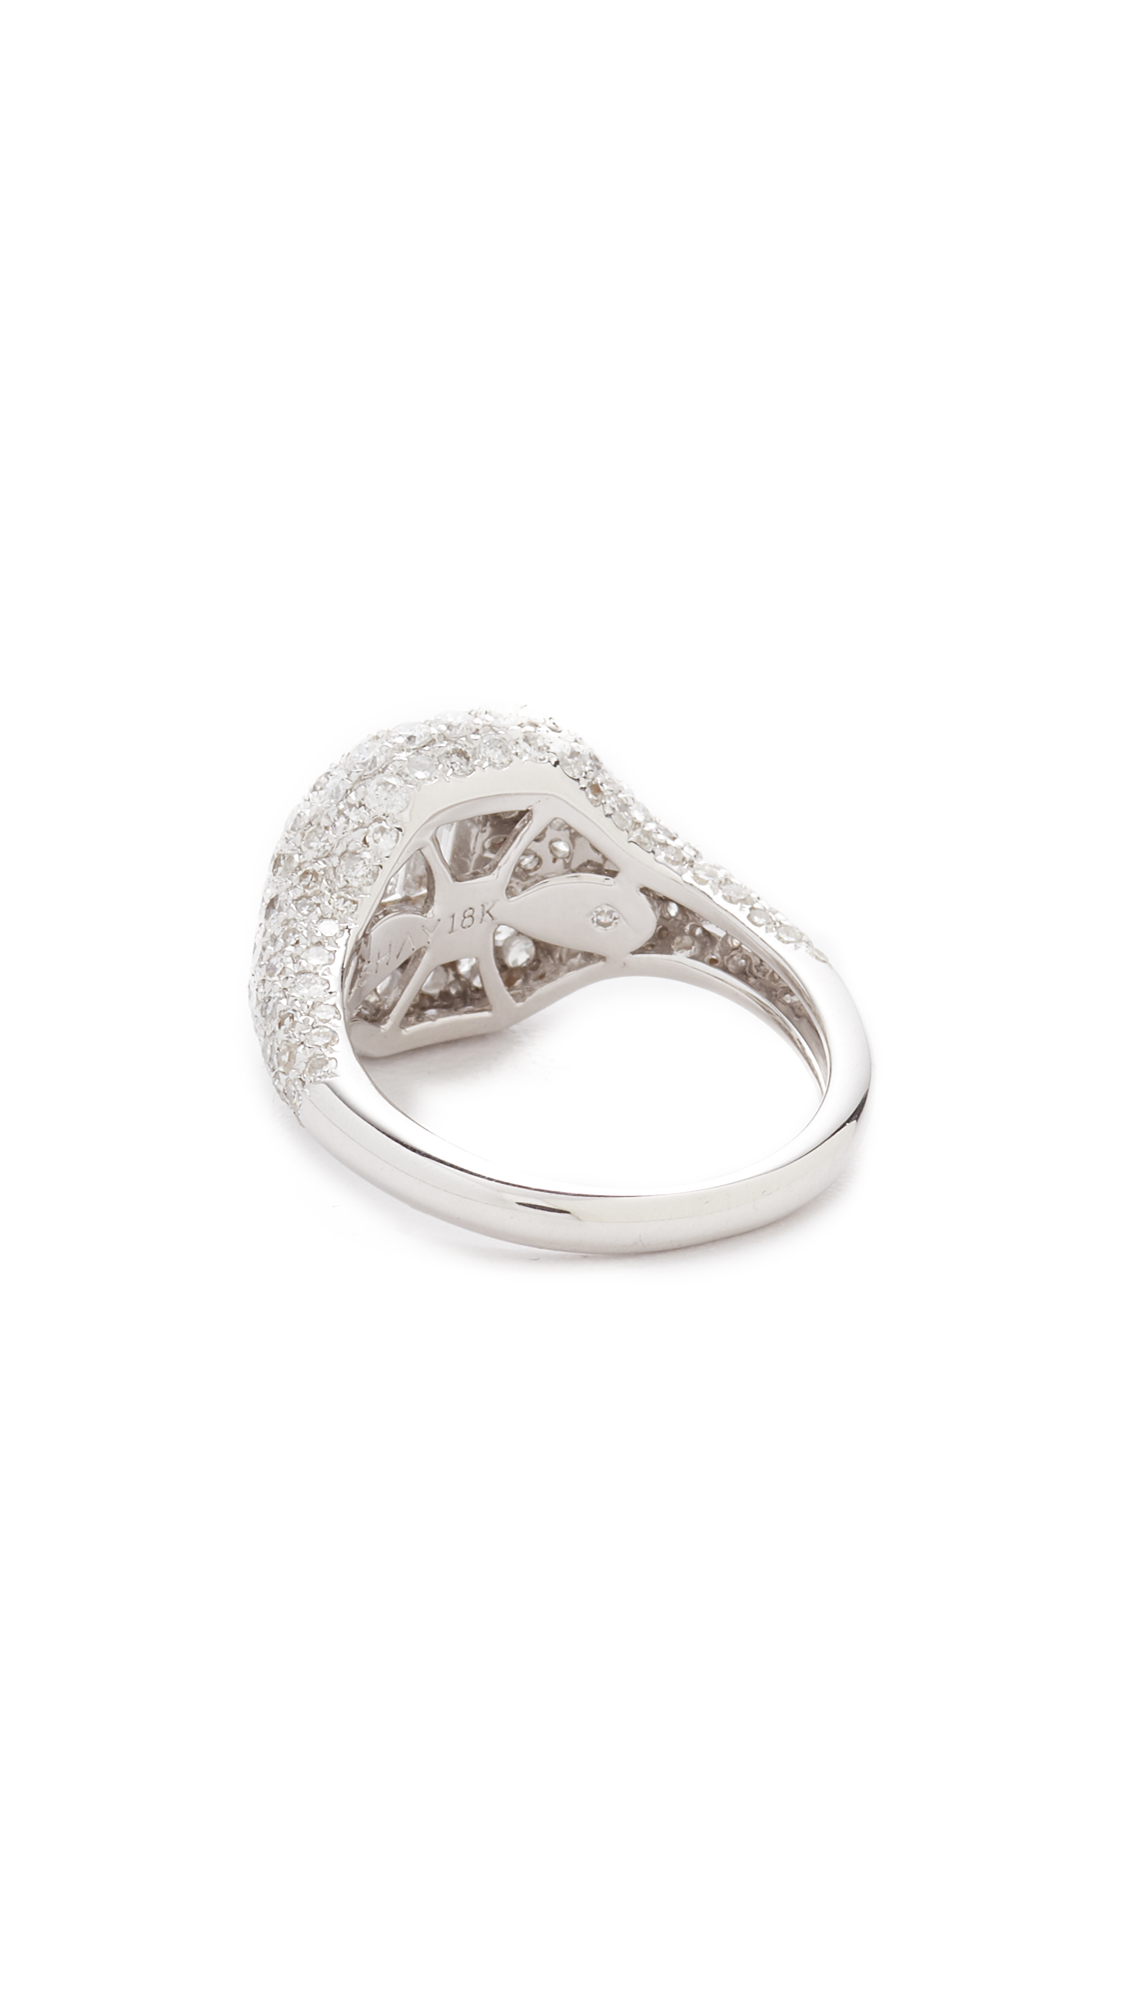 Shay 18k White Gold Pave Essential Diamond Pinky Ring qDDAvIJ